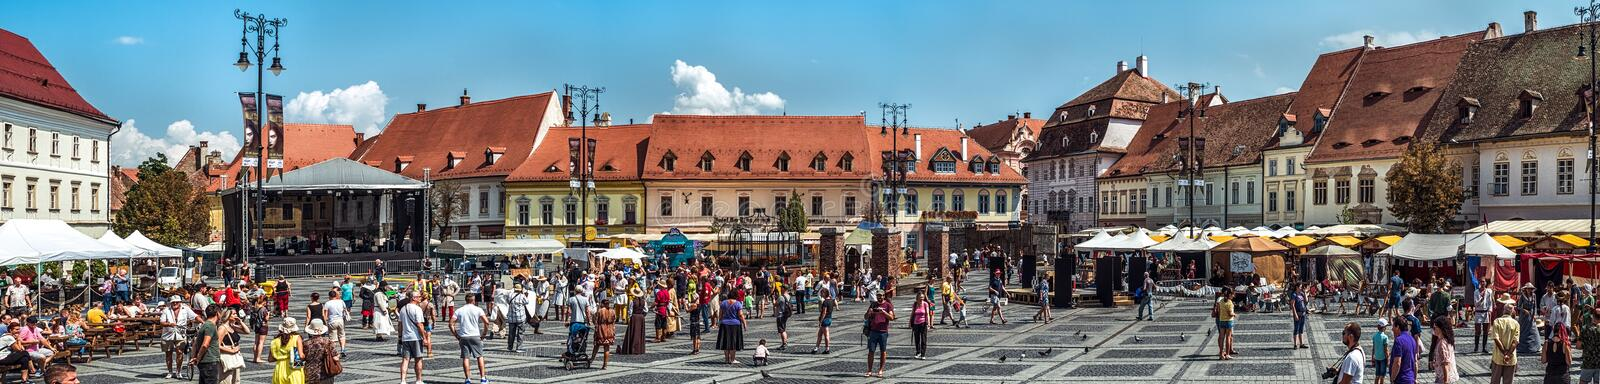 Panoramic view of the Big Square during Medieval Festival 2019. Sibiu City, Romania - 25 August 2019. Panoramic view of the Big Square from Sibiu during the stock photo